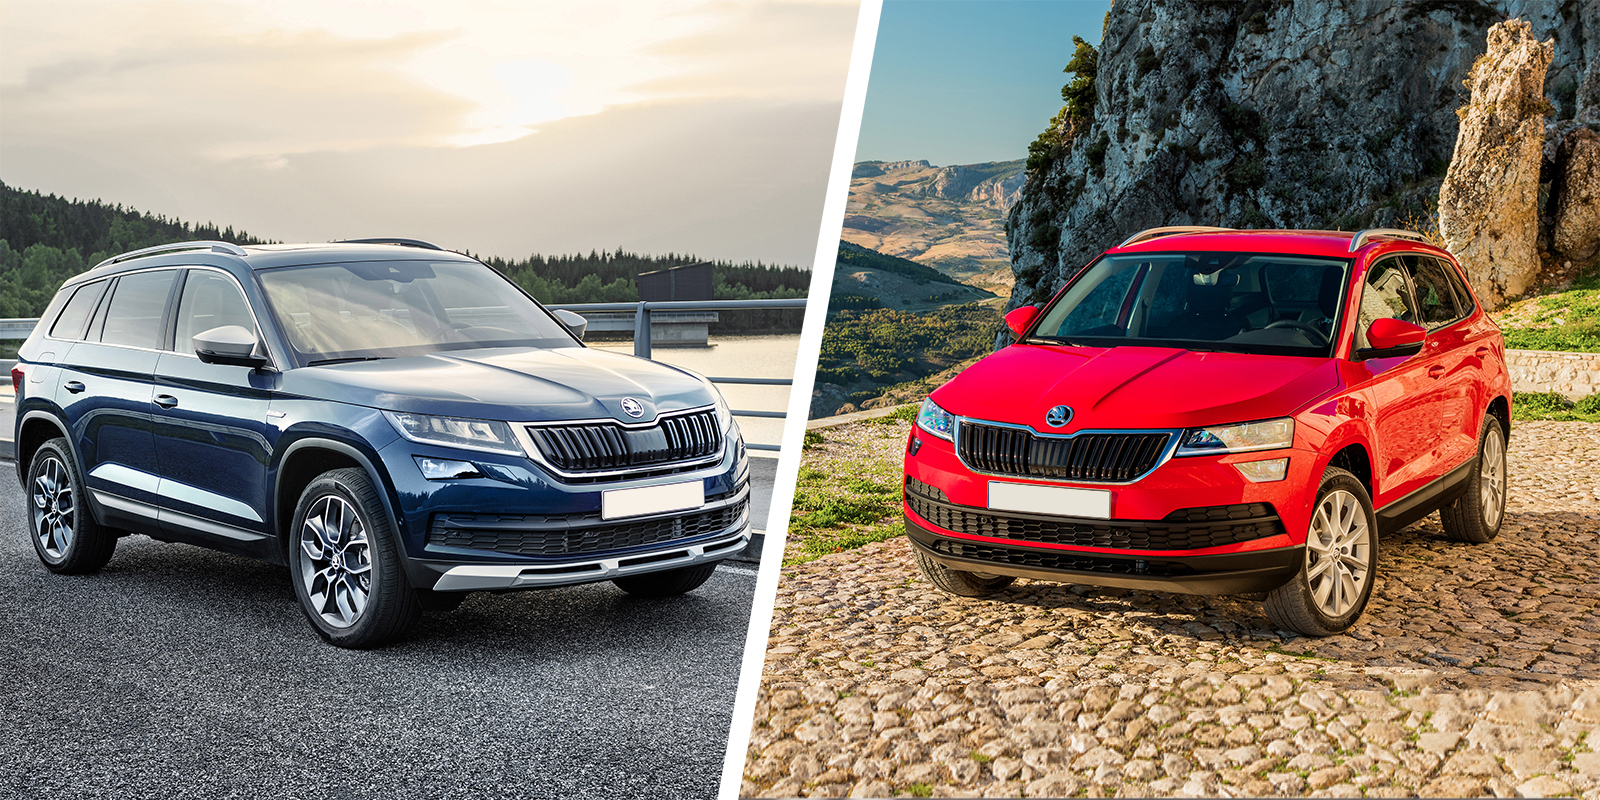 Skoda Kodiaq vs Skoda Karoq which is best